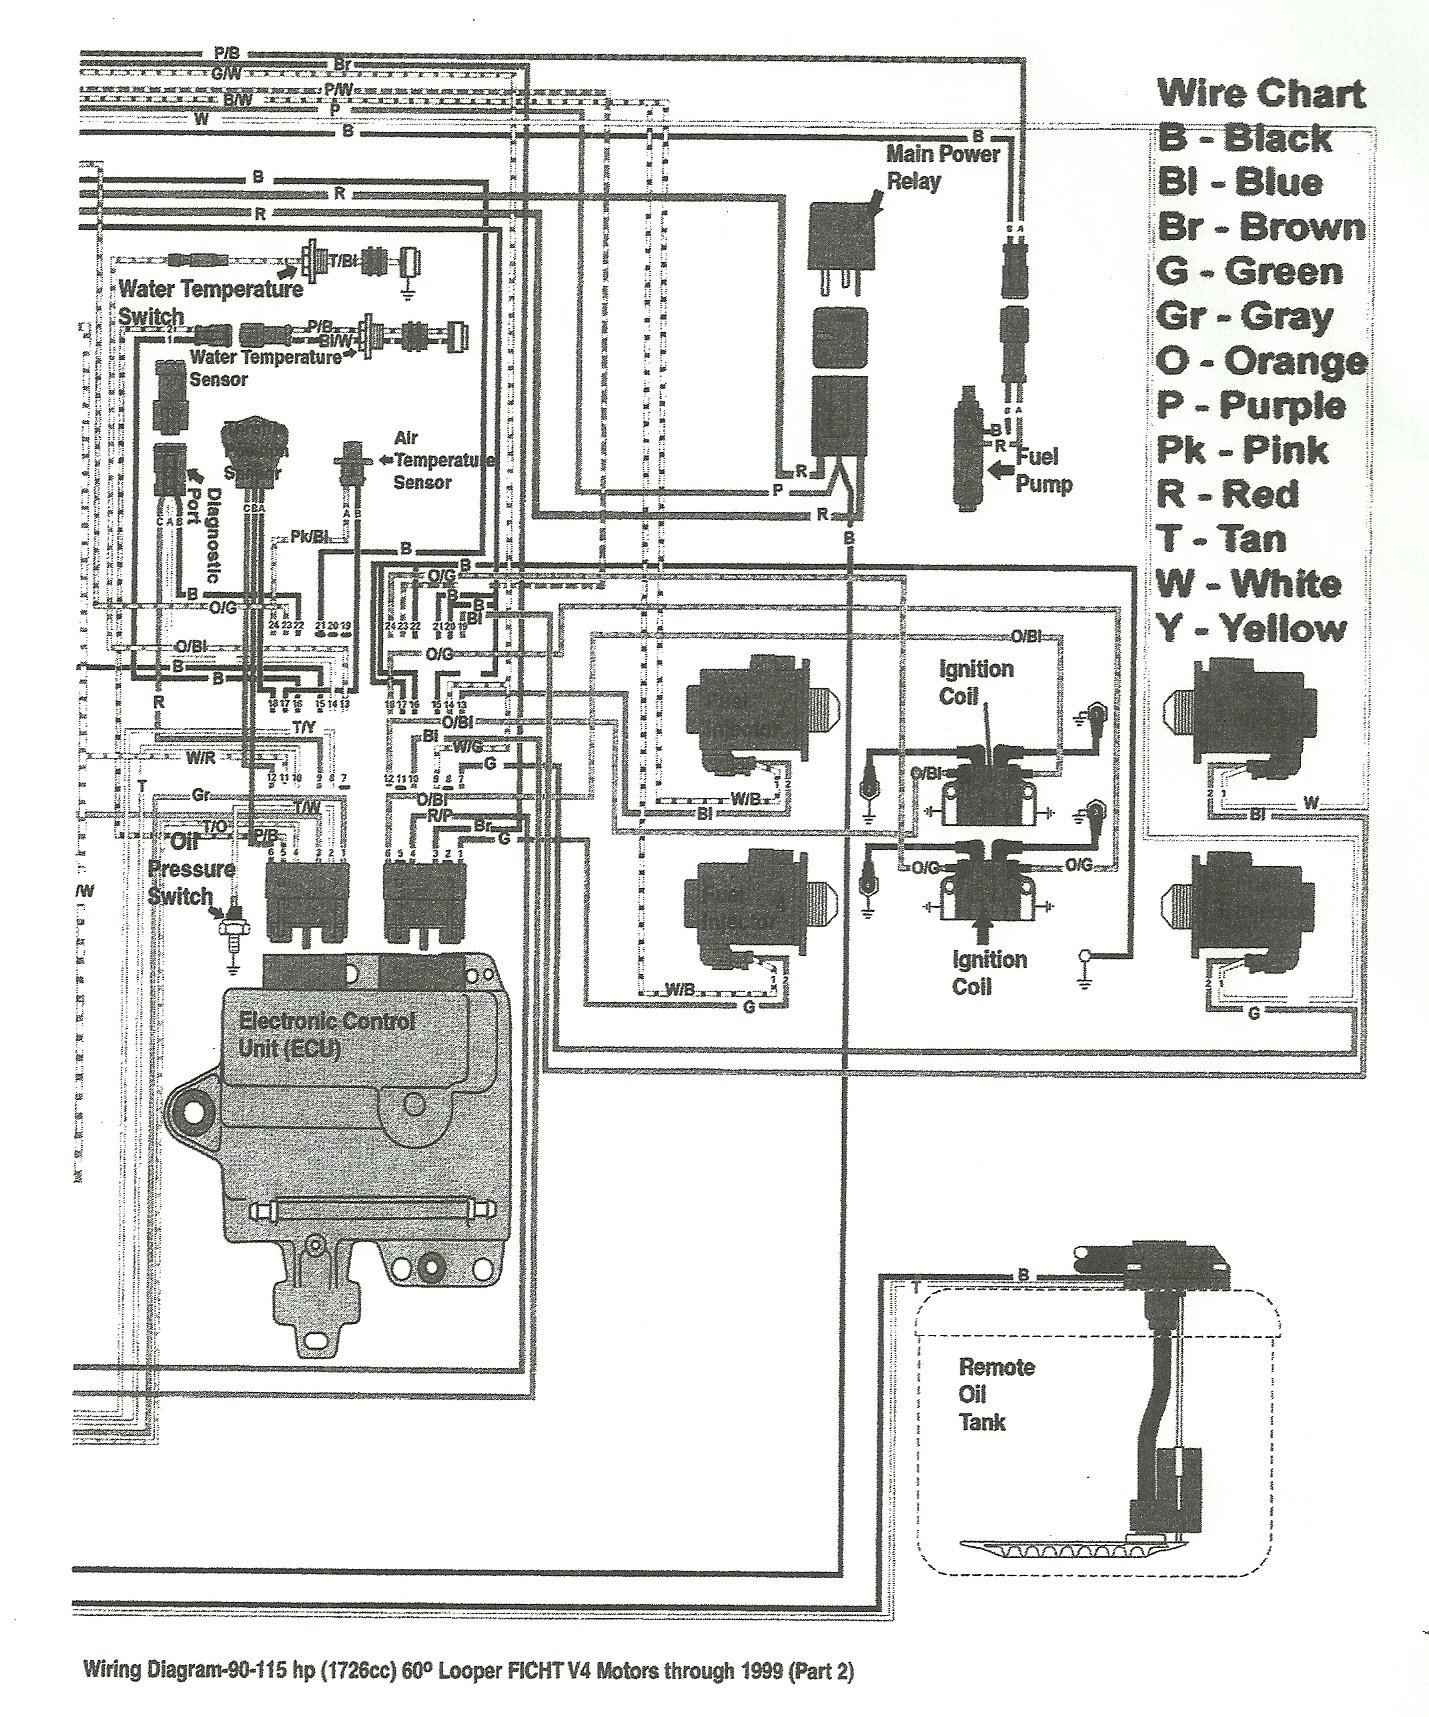 2013 01 06_034603_scan0005 can you please provide an electrical circuit diagram for an 2002 Evinrude Ficht 200 at fashall.co